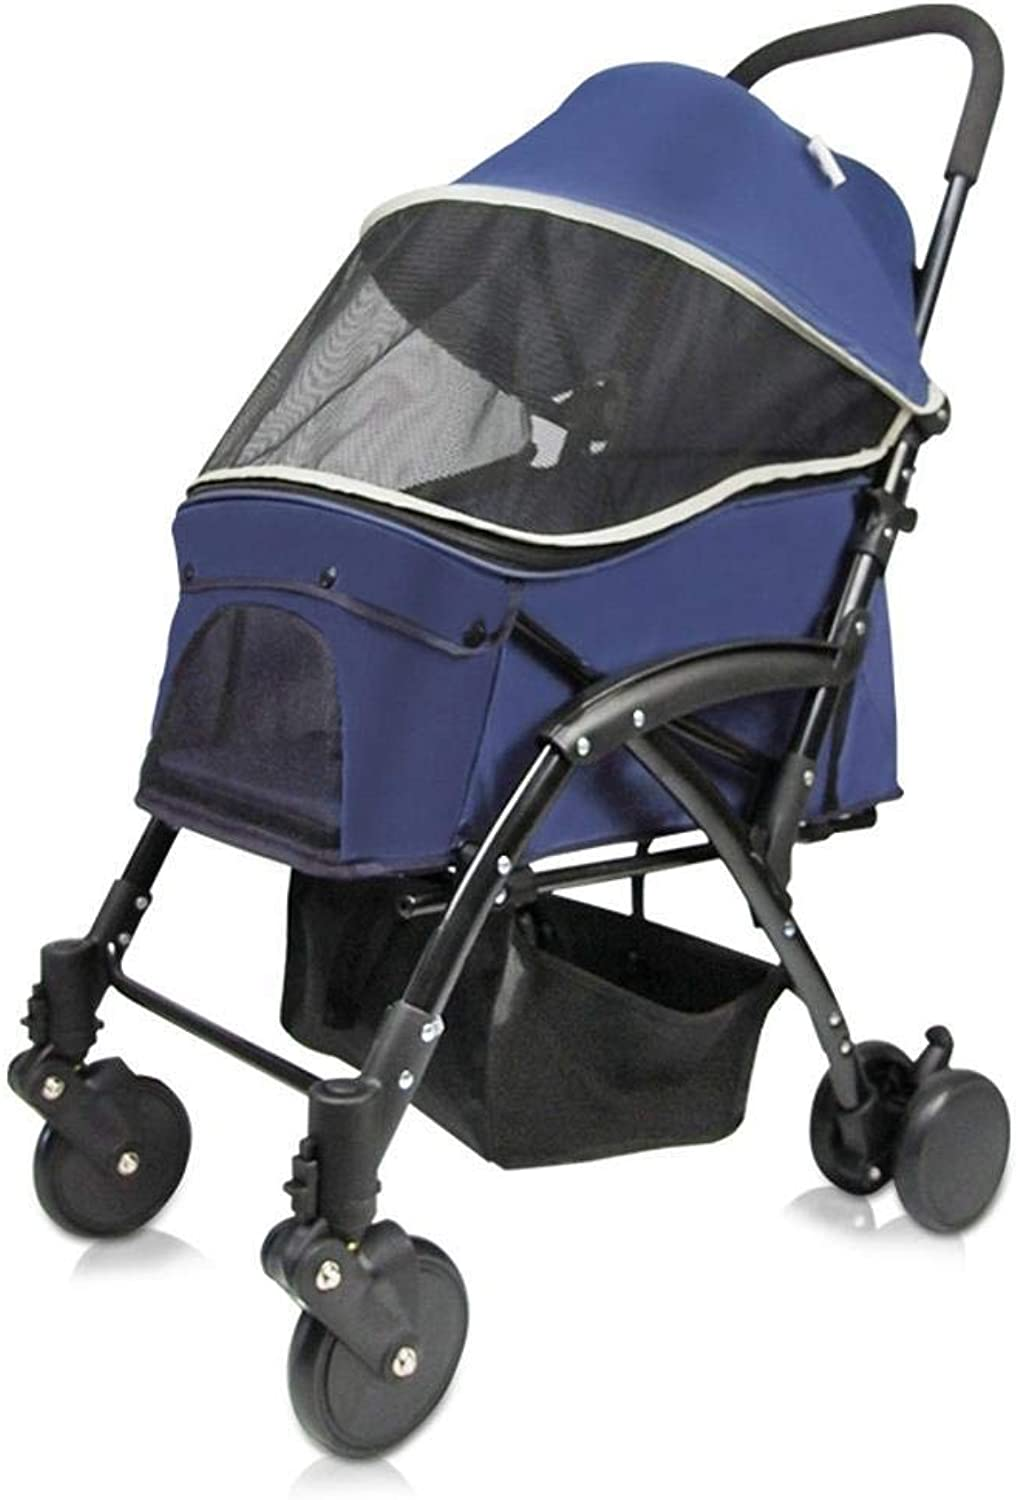 Lozse Pet Stroller Dog Pushchair Lightweight folding trolley 30 percent fashion fourwheel pet out of the shop